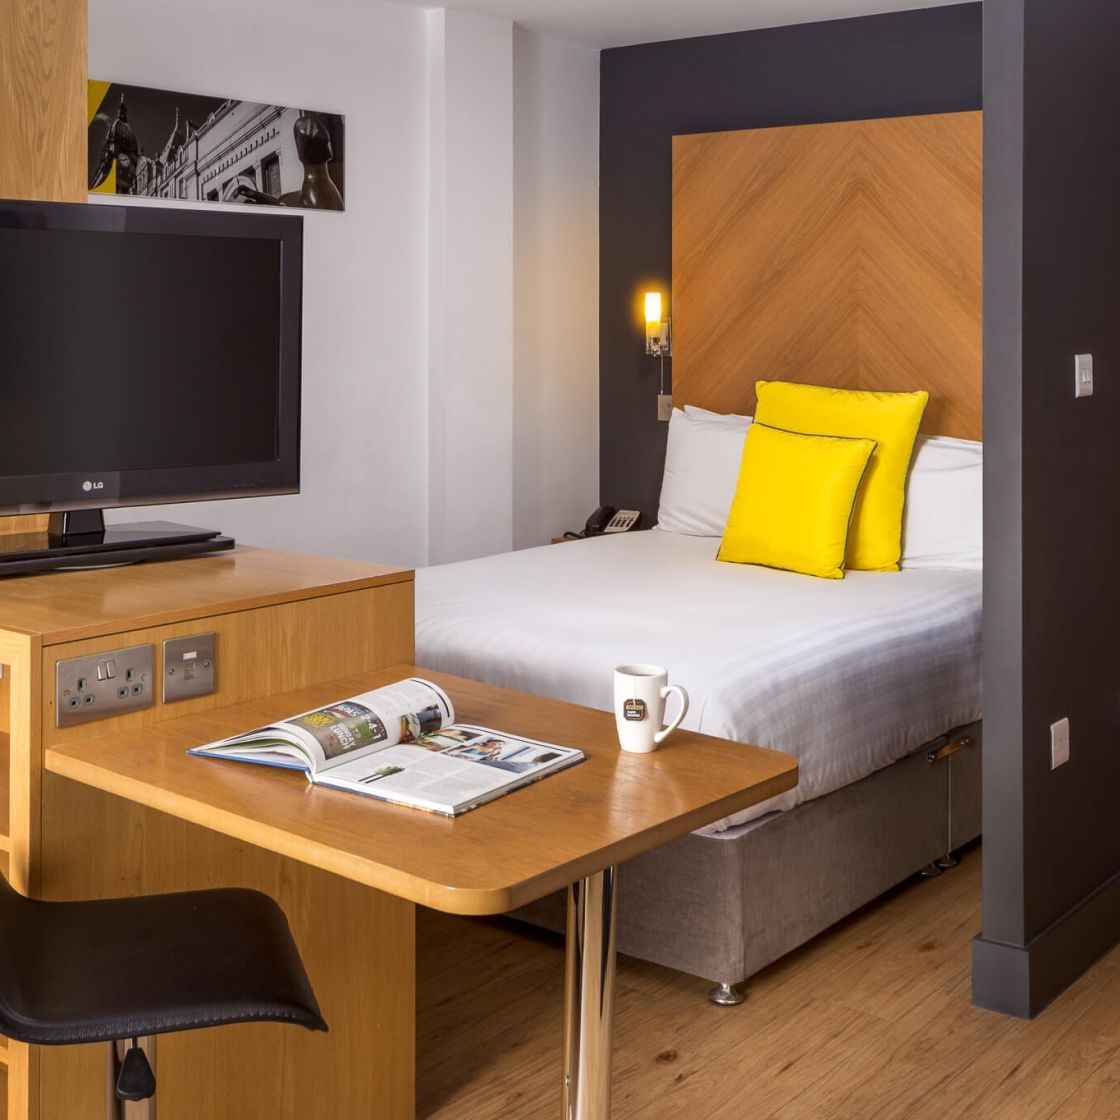 Smart Studio Student Apartment in Leeds with King Size Bed, Desk and TV. IconInc @ Roomzzz Leeds City West